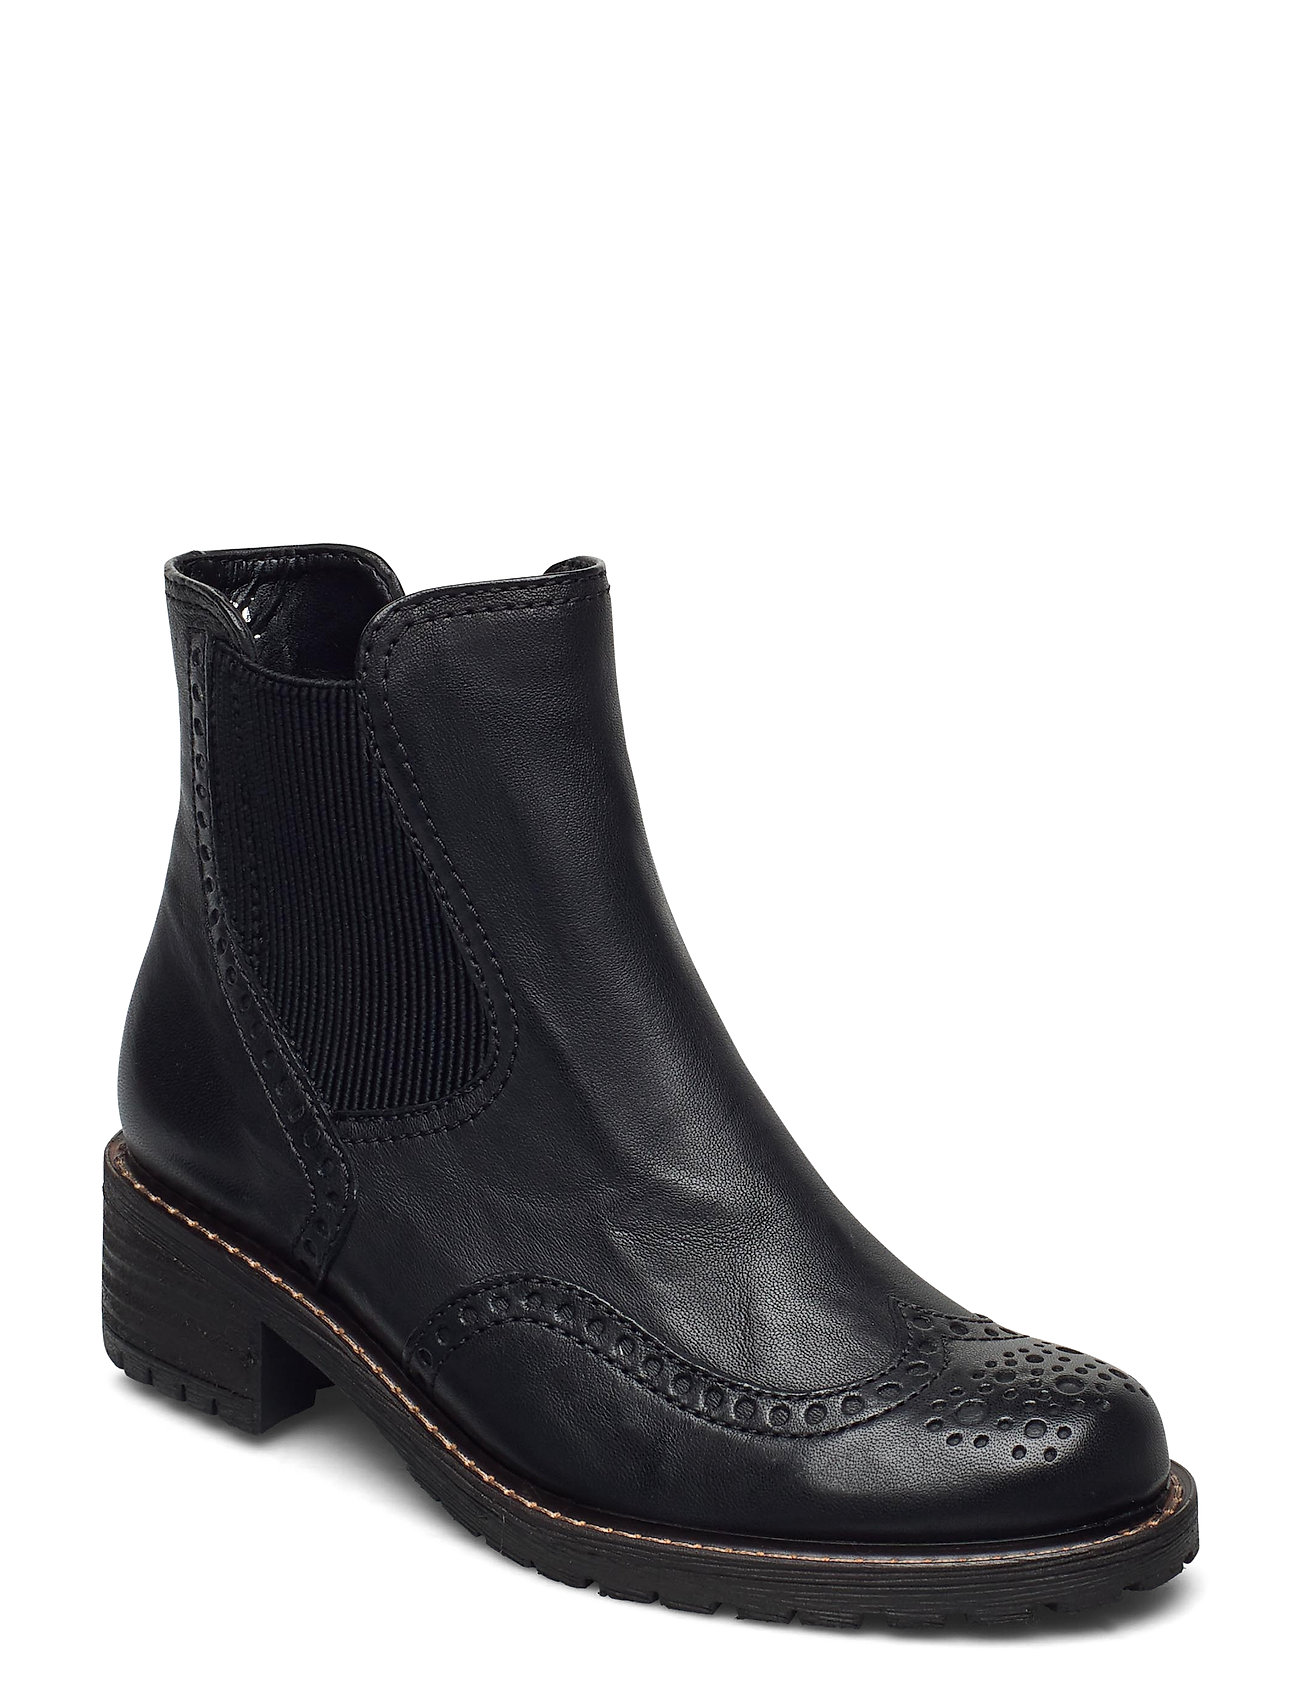 Image of Ankle Boot Shoes Boots Ankle Boots Ankle Boot - Flat Sort Gabor (3440209451)